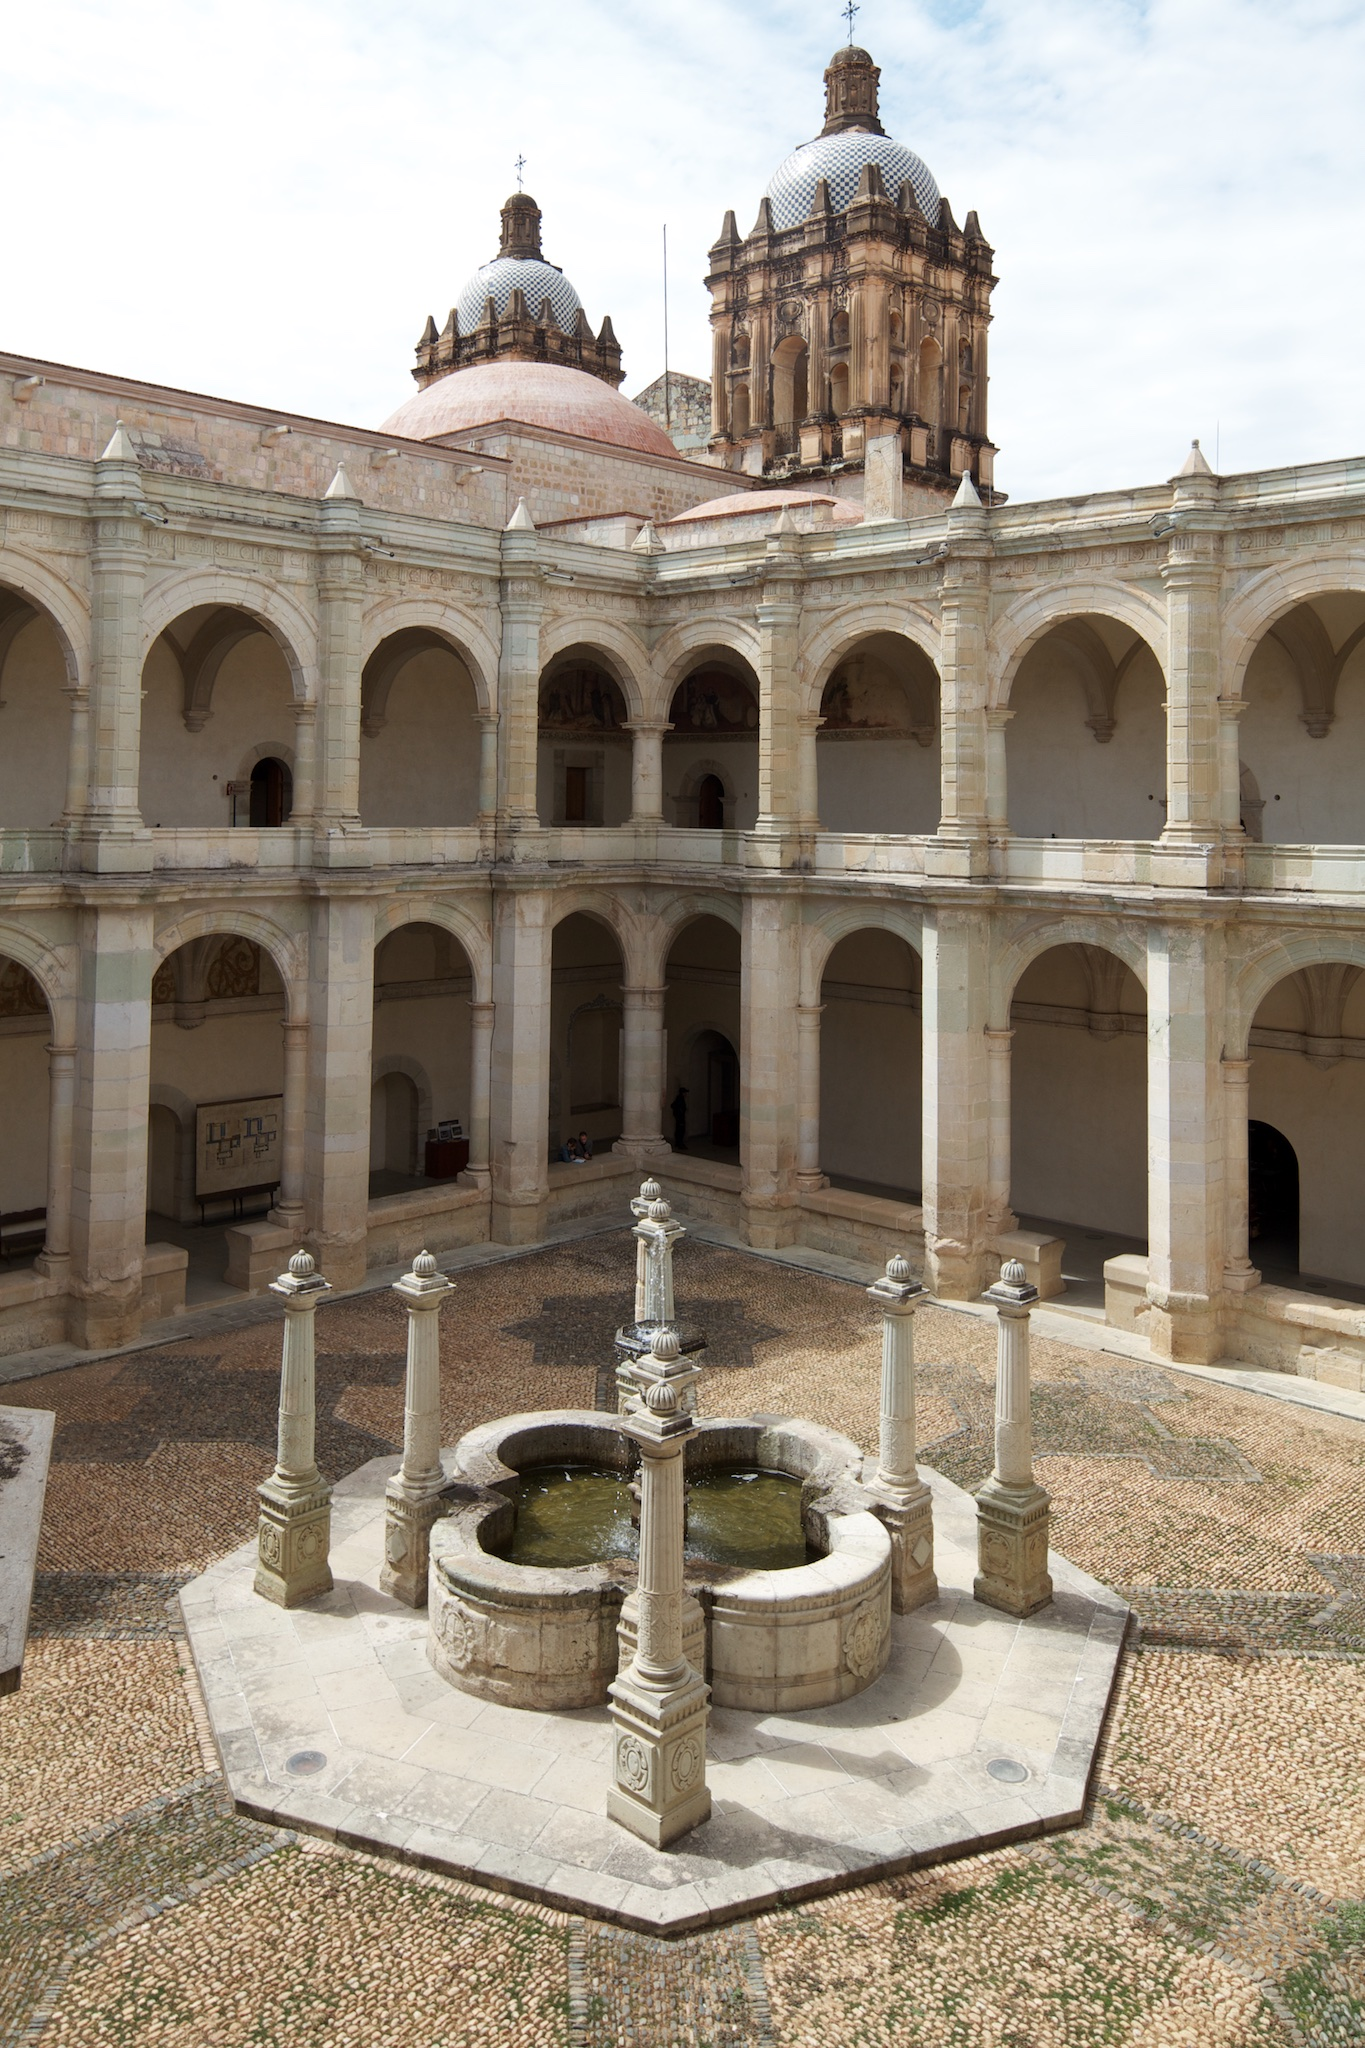 Main interior courtyard